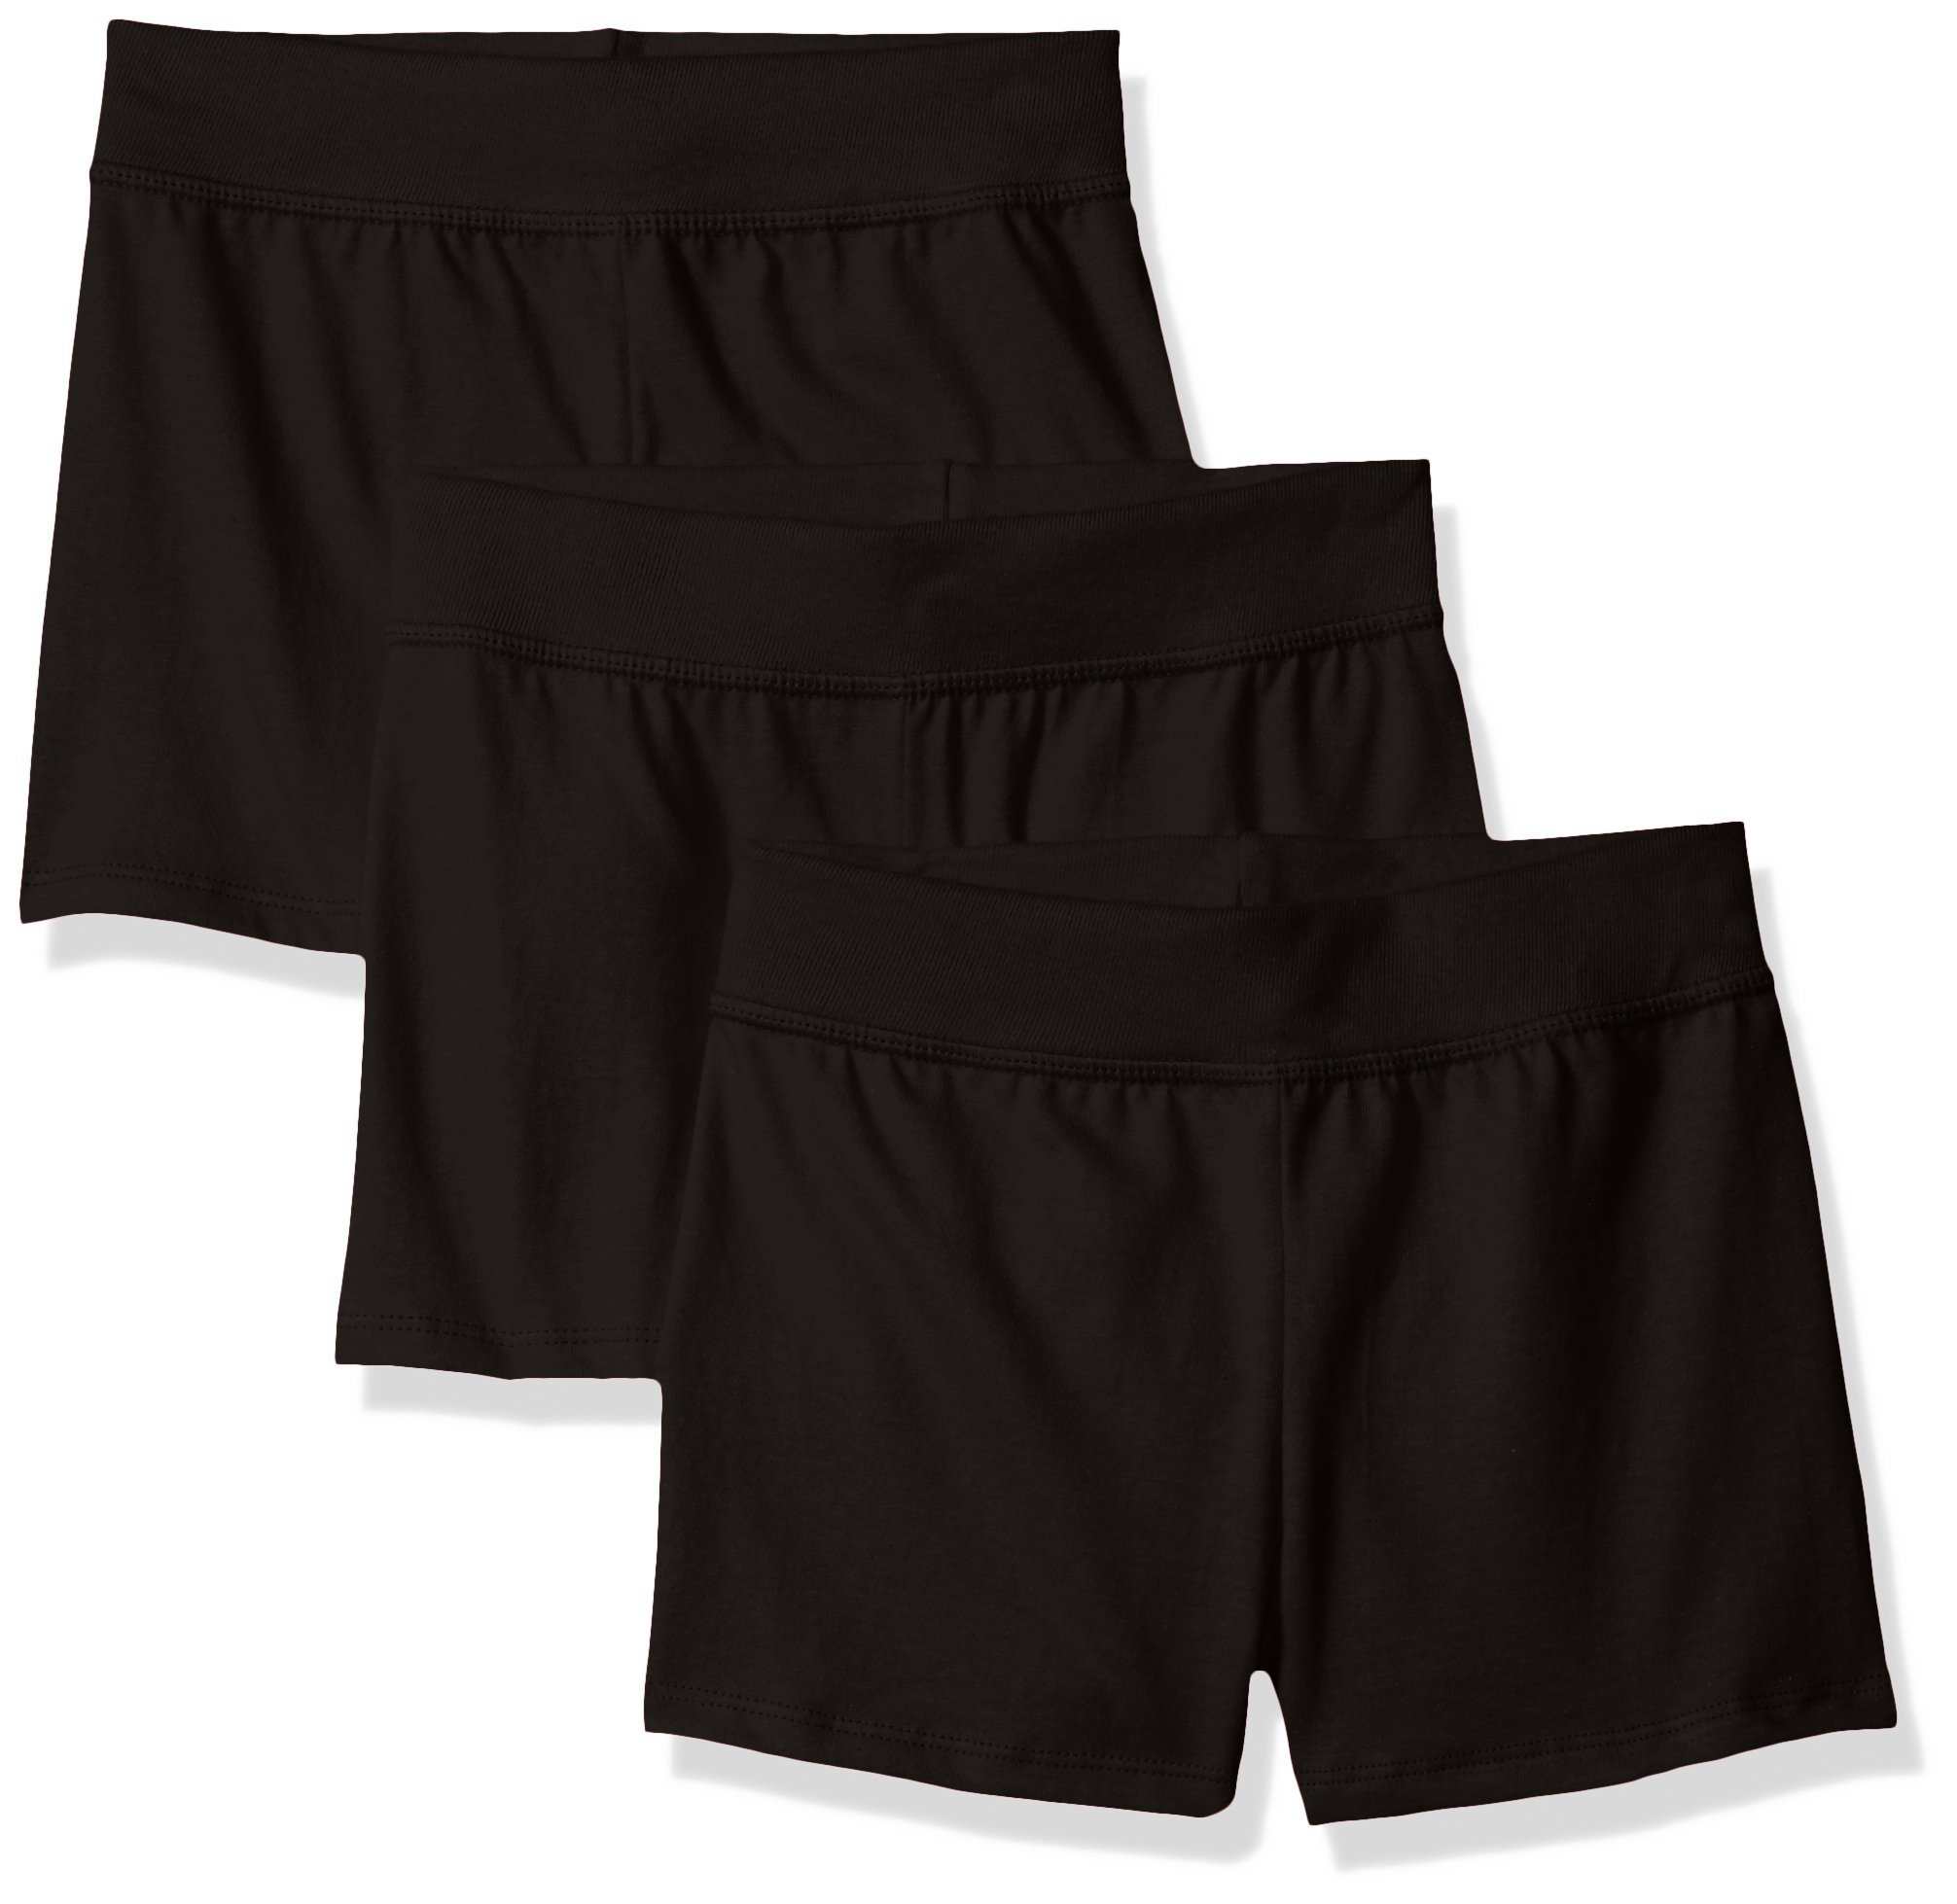 Hanes Little Girls' Jersey Short (Pack of 3), Ebony, Large by Hanes (Image #1)